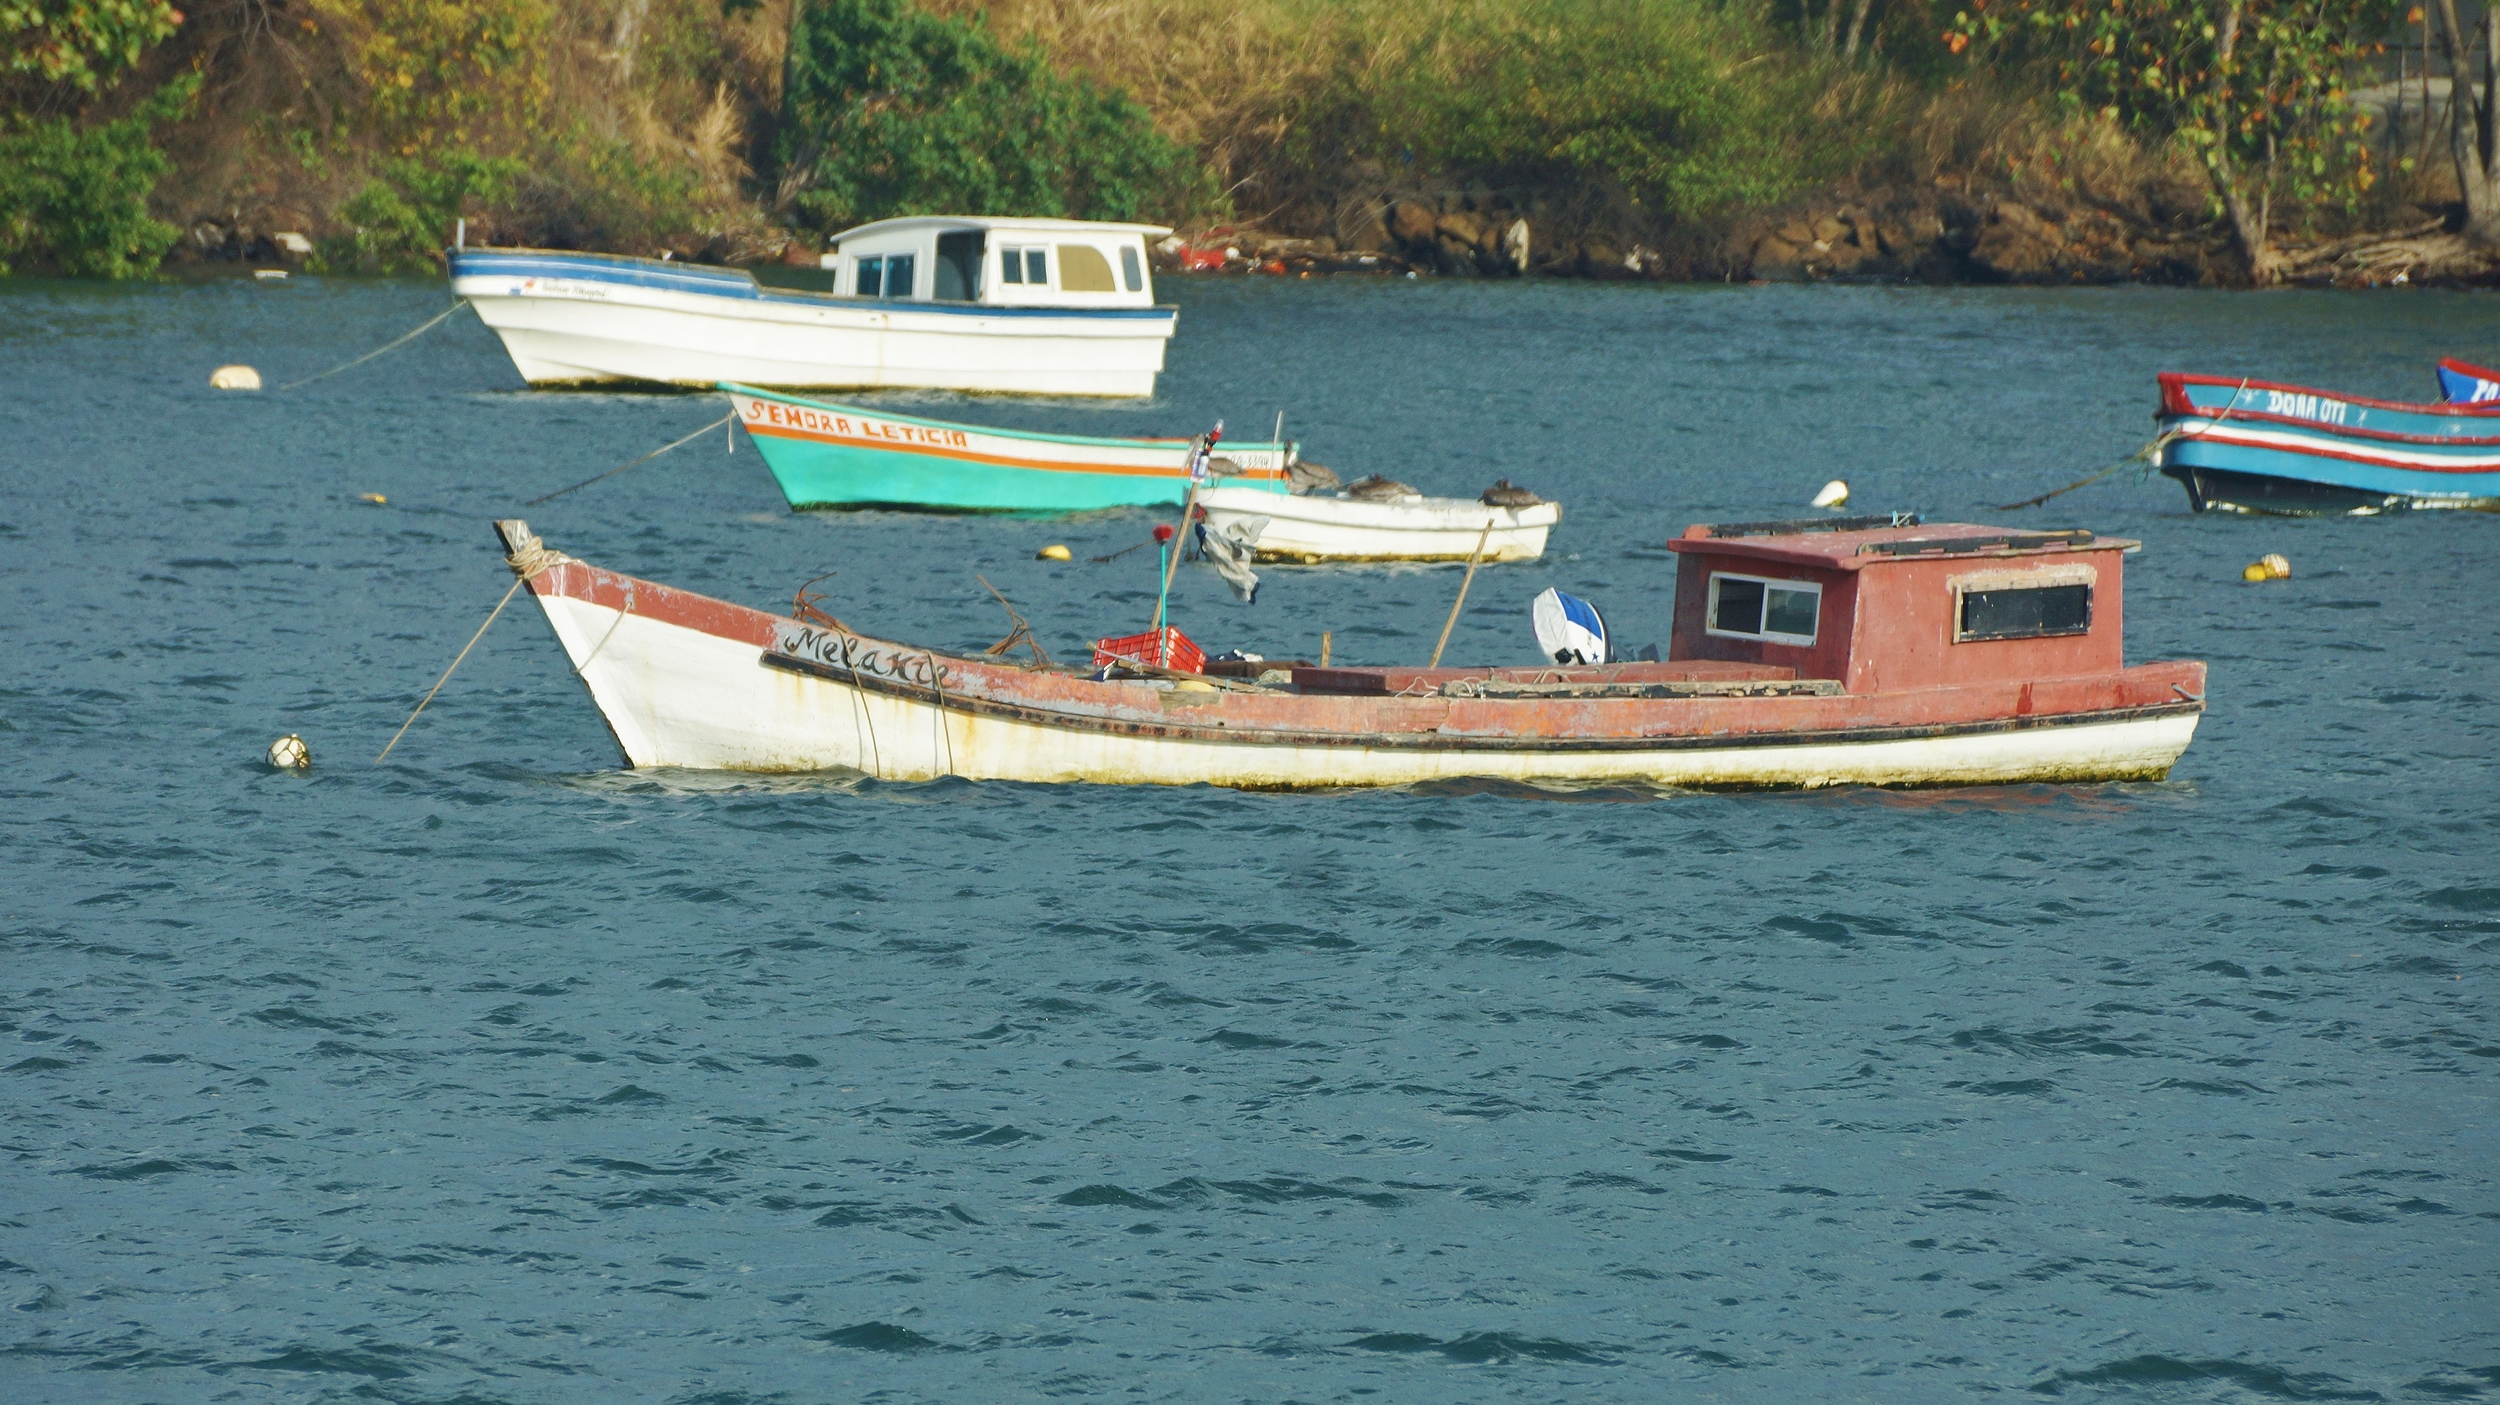 Boats in Panama (Chumlee10 - Flickr)